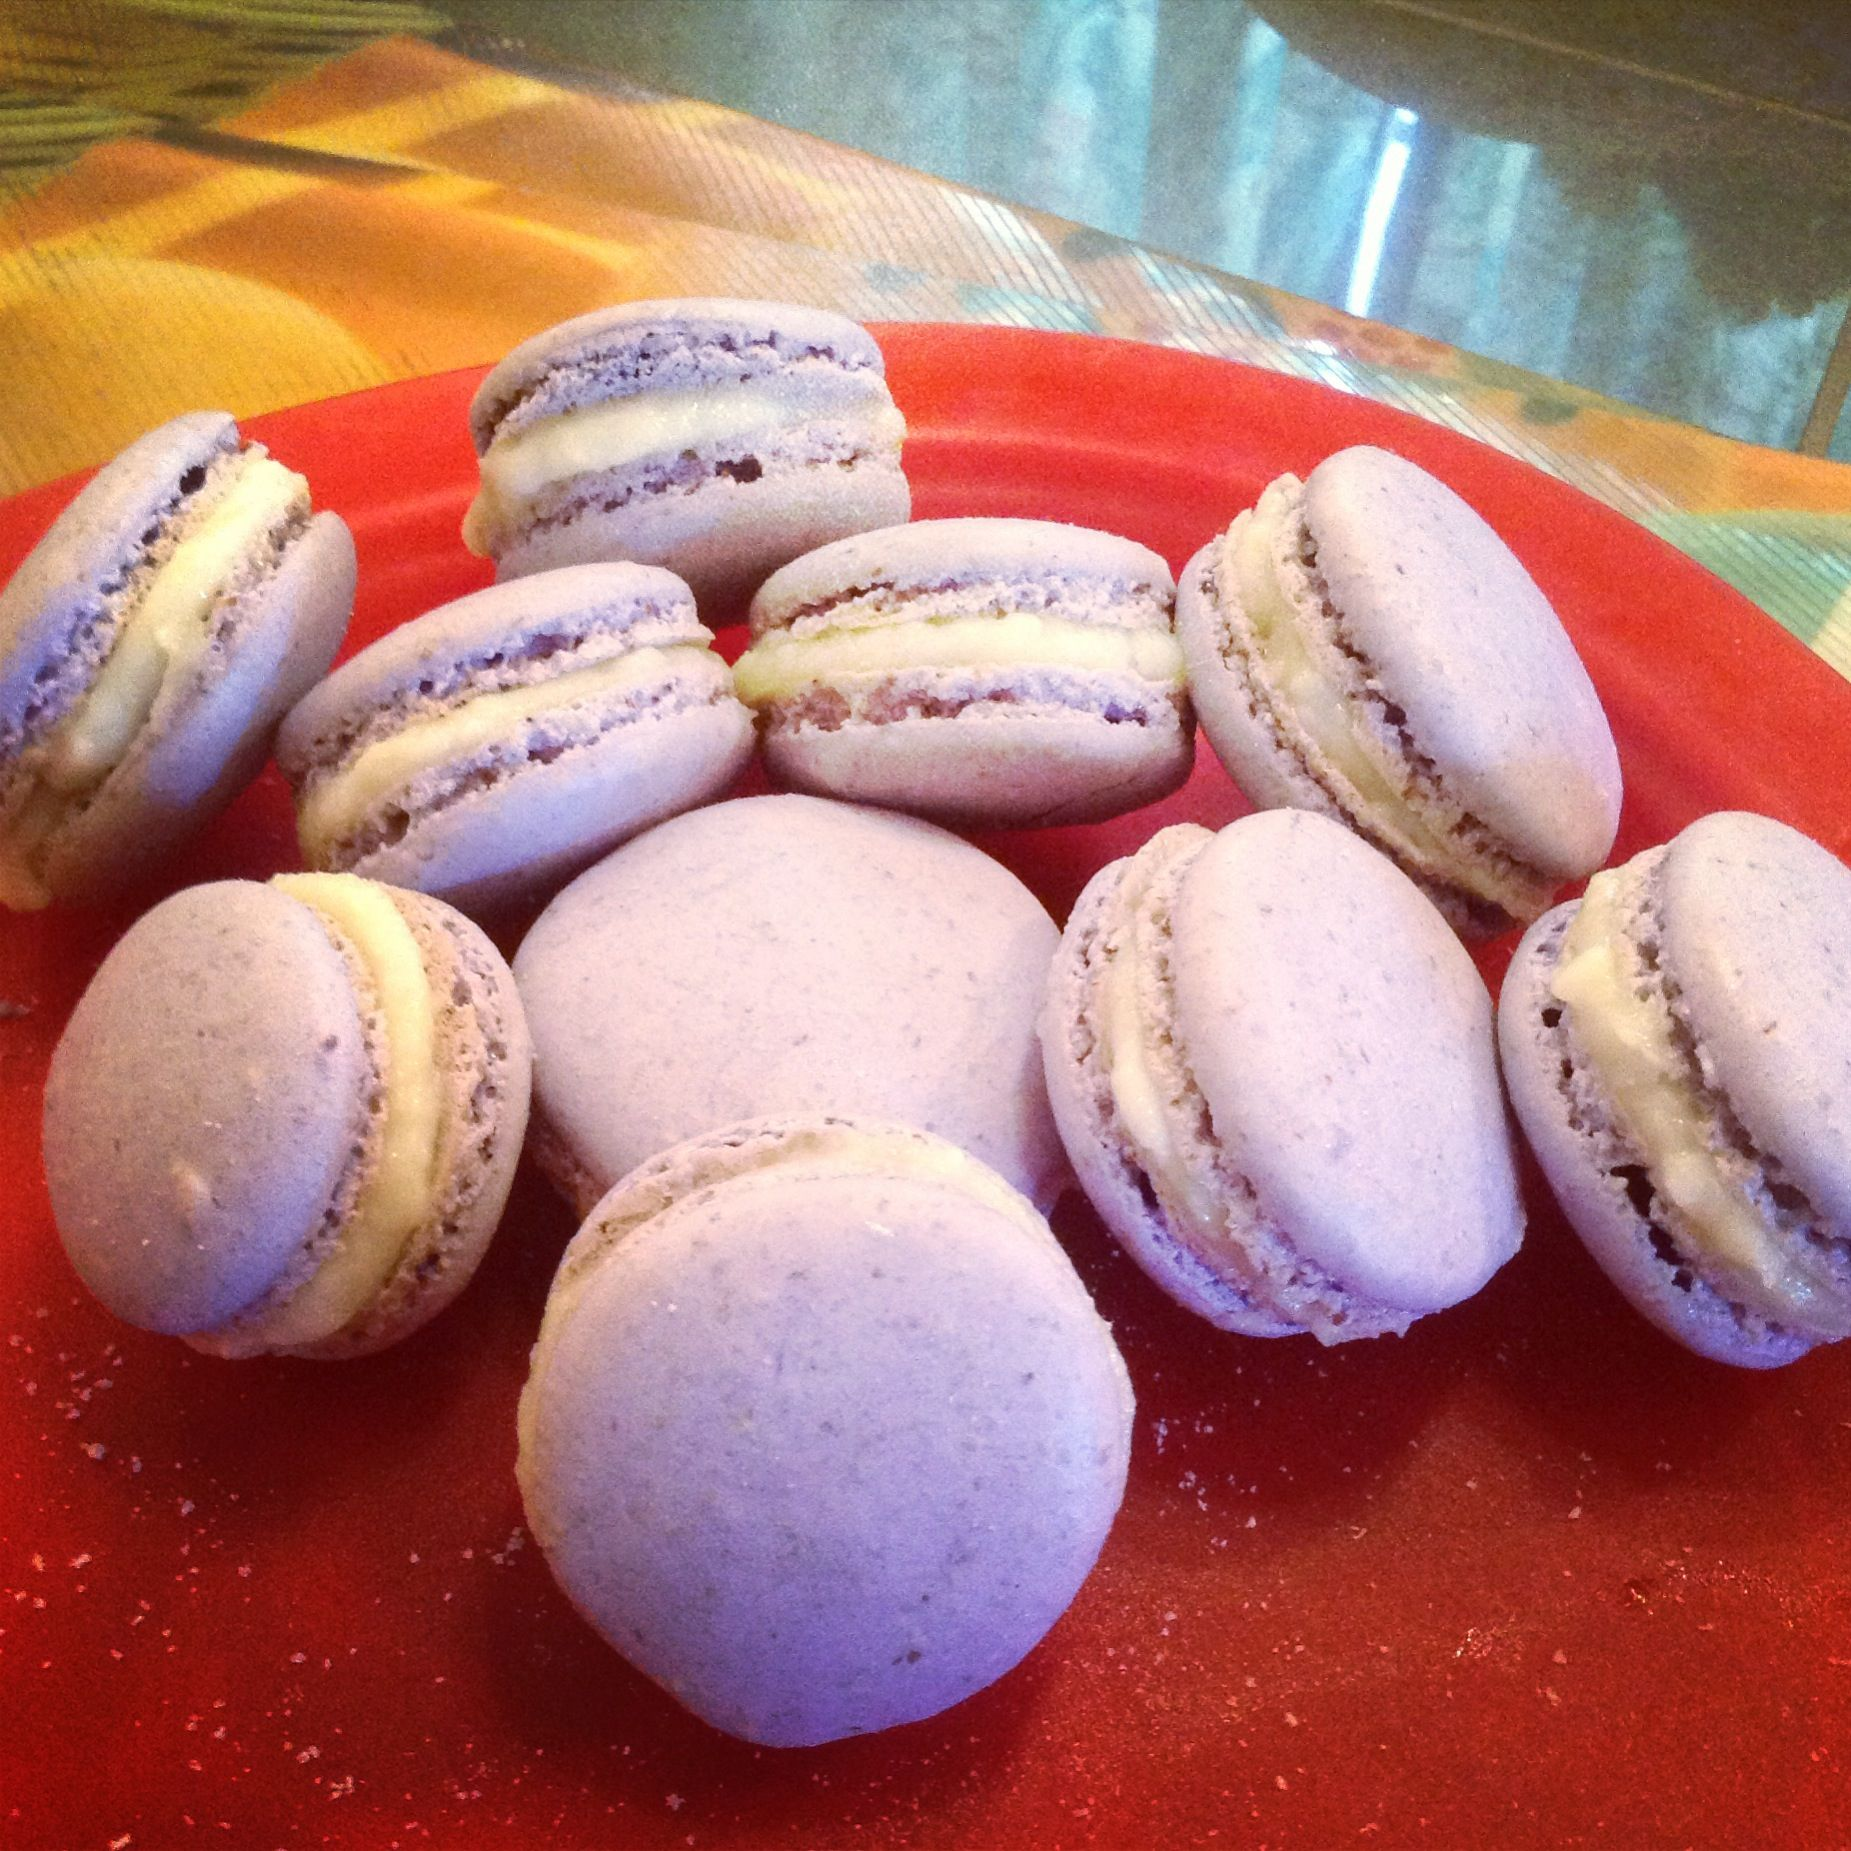 Perfect, fool-proof French macaroon recipe ☺ #thecupcakeboutique